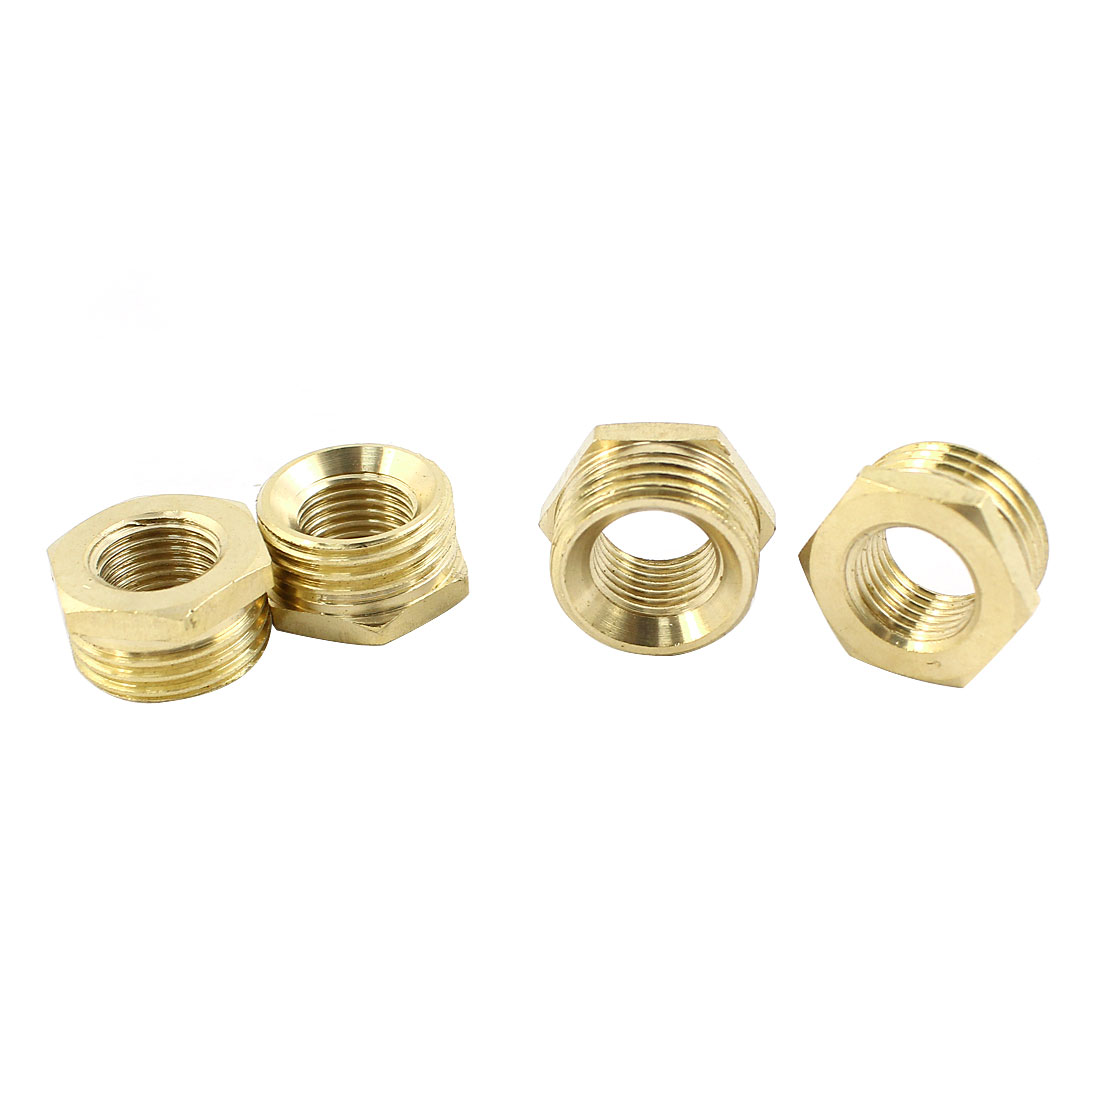 4 Pcs Air Pipe Fittings Male 1/2PT to Female 1/4 PT Exterior Hex Head Socket Adapter Caps